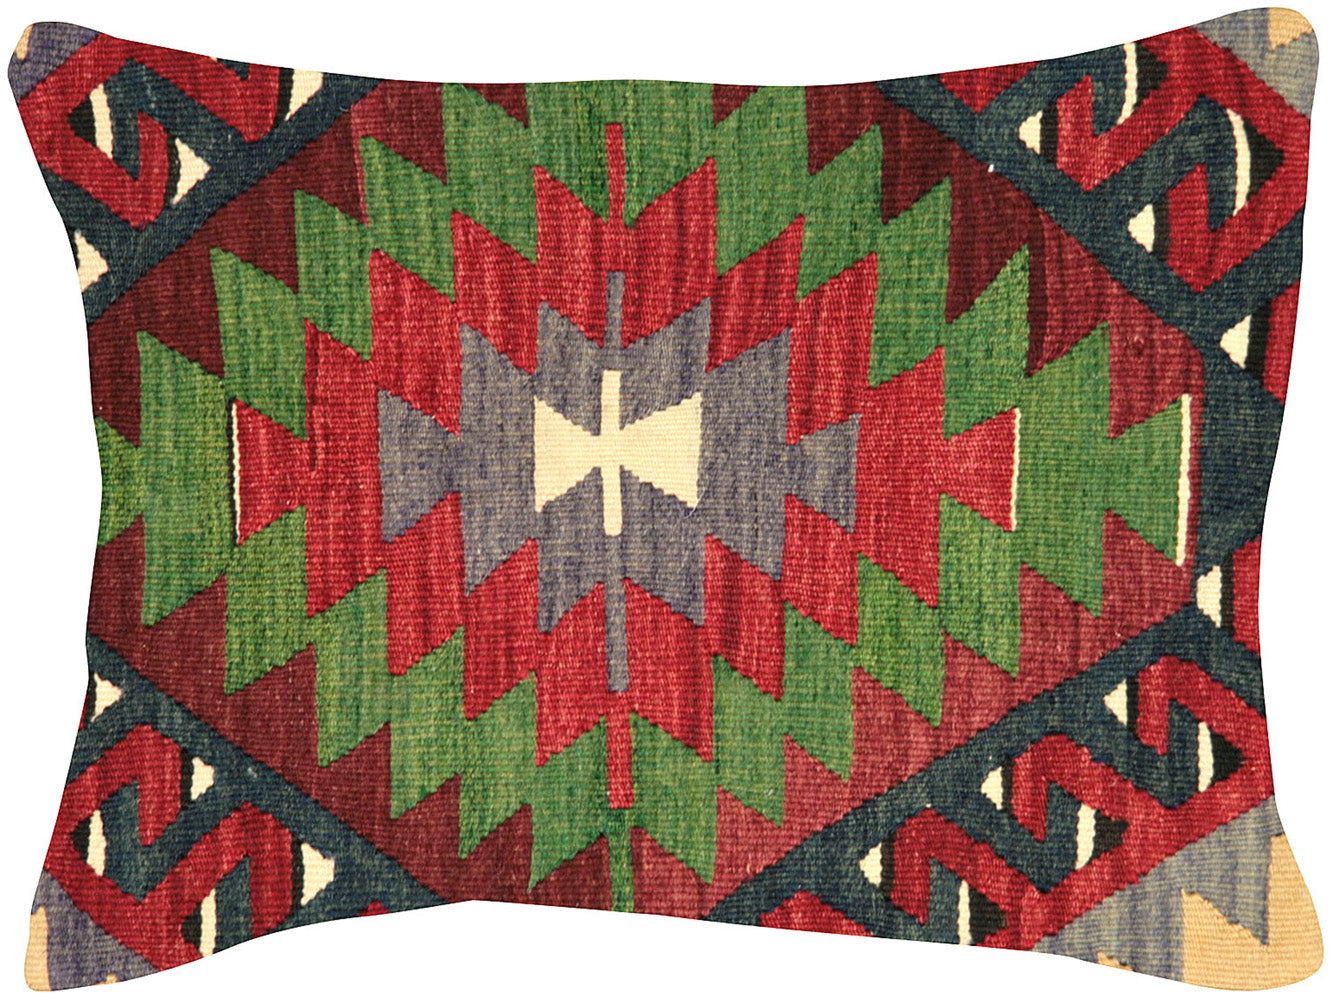 "Vintage Turkish Kilim Pillow - 18"" x 24"""